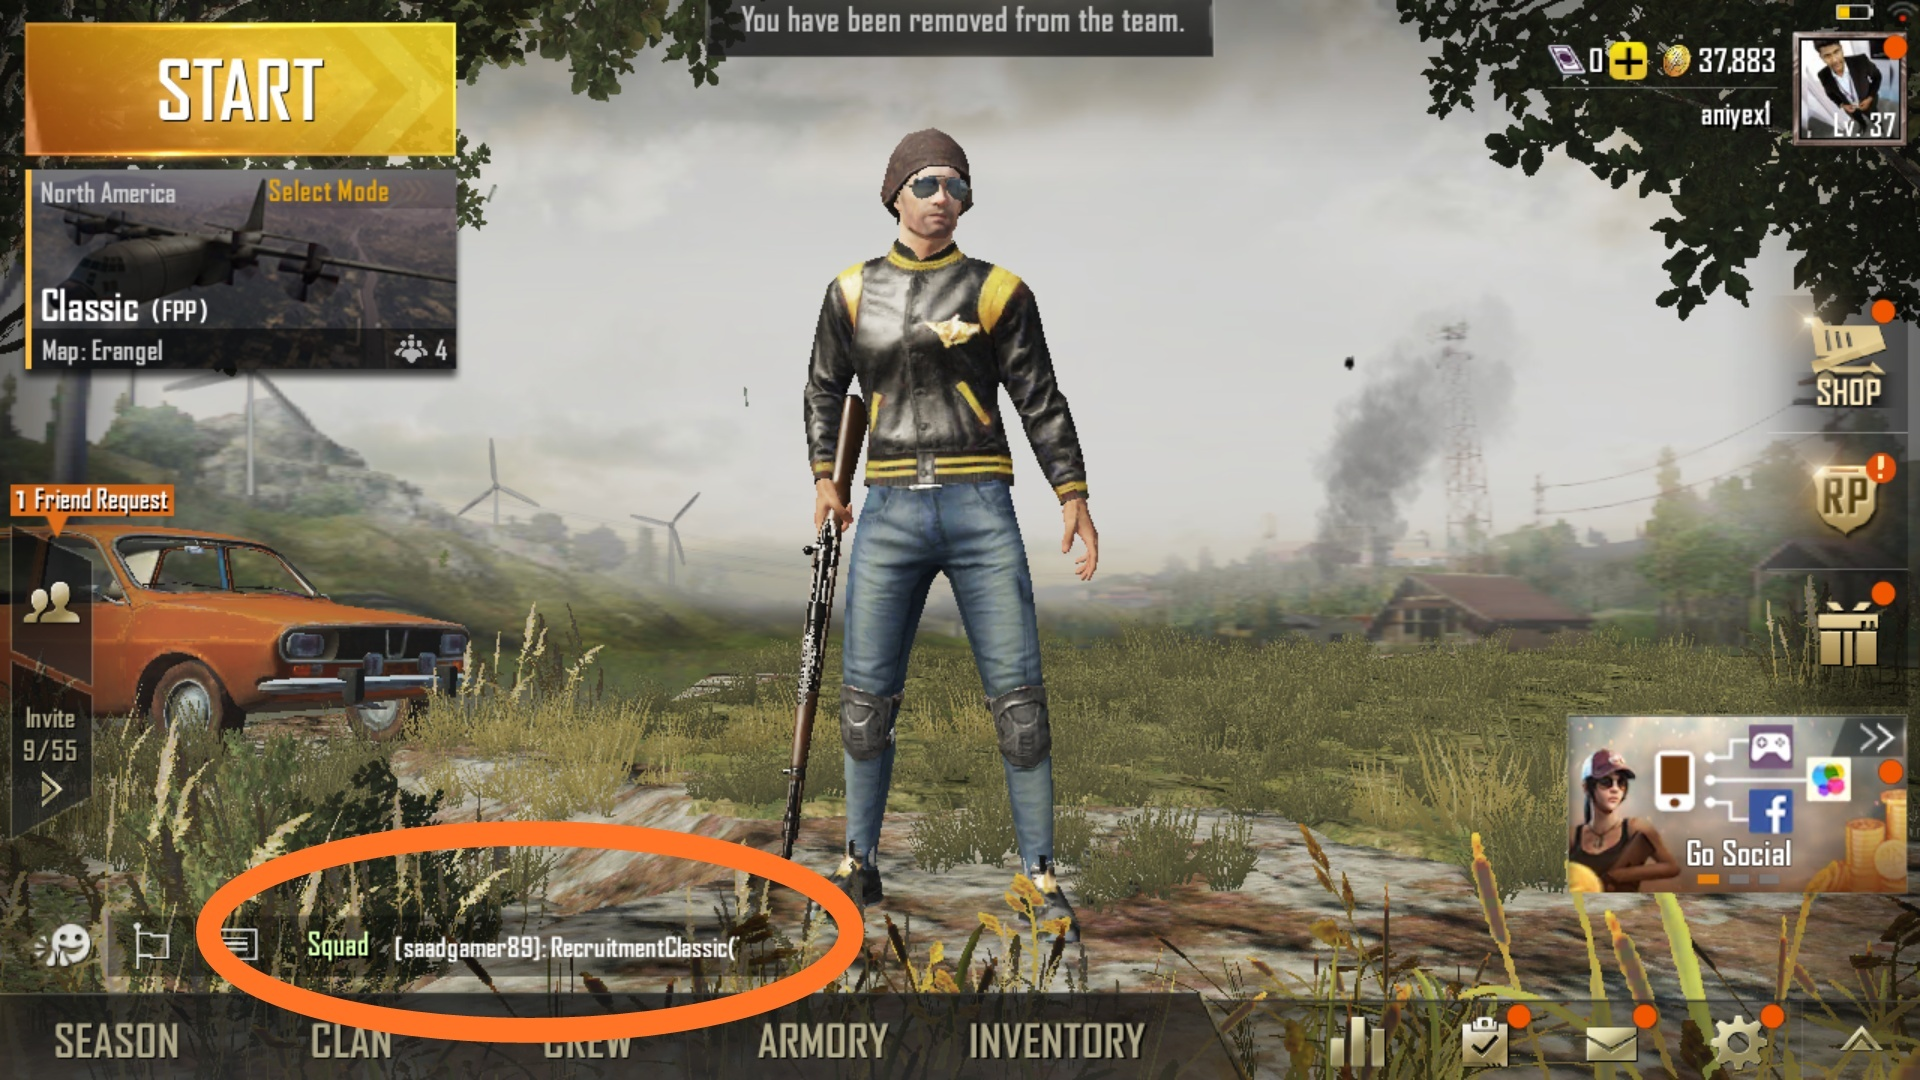 How to enter a chat room in PUBG - Quora